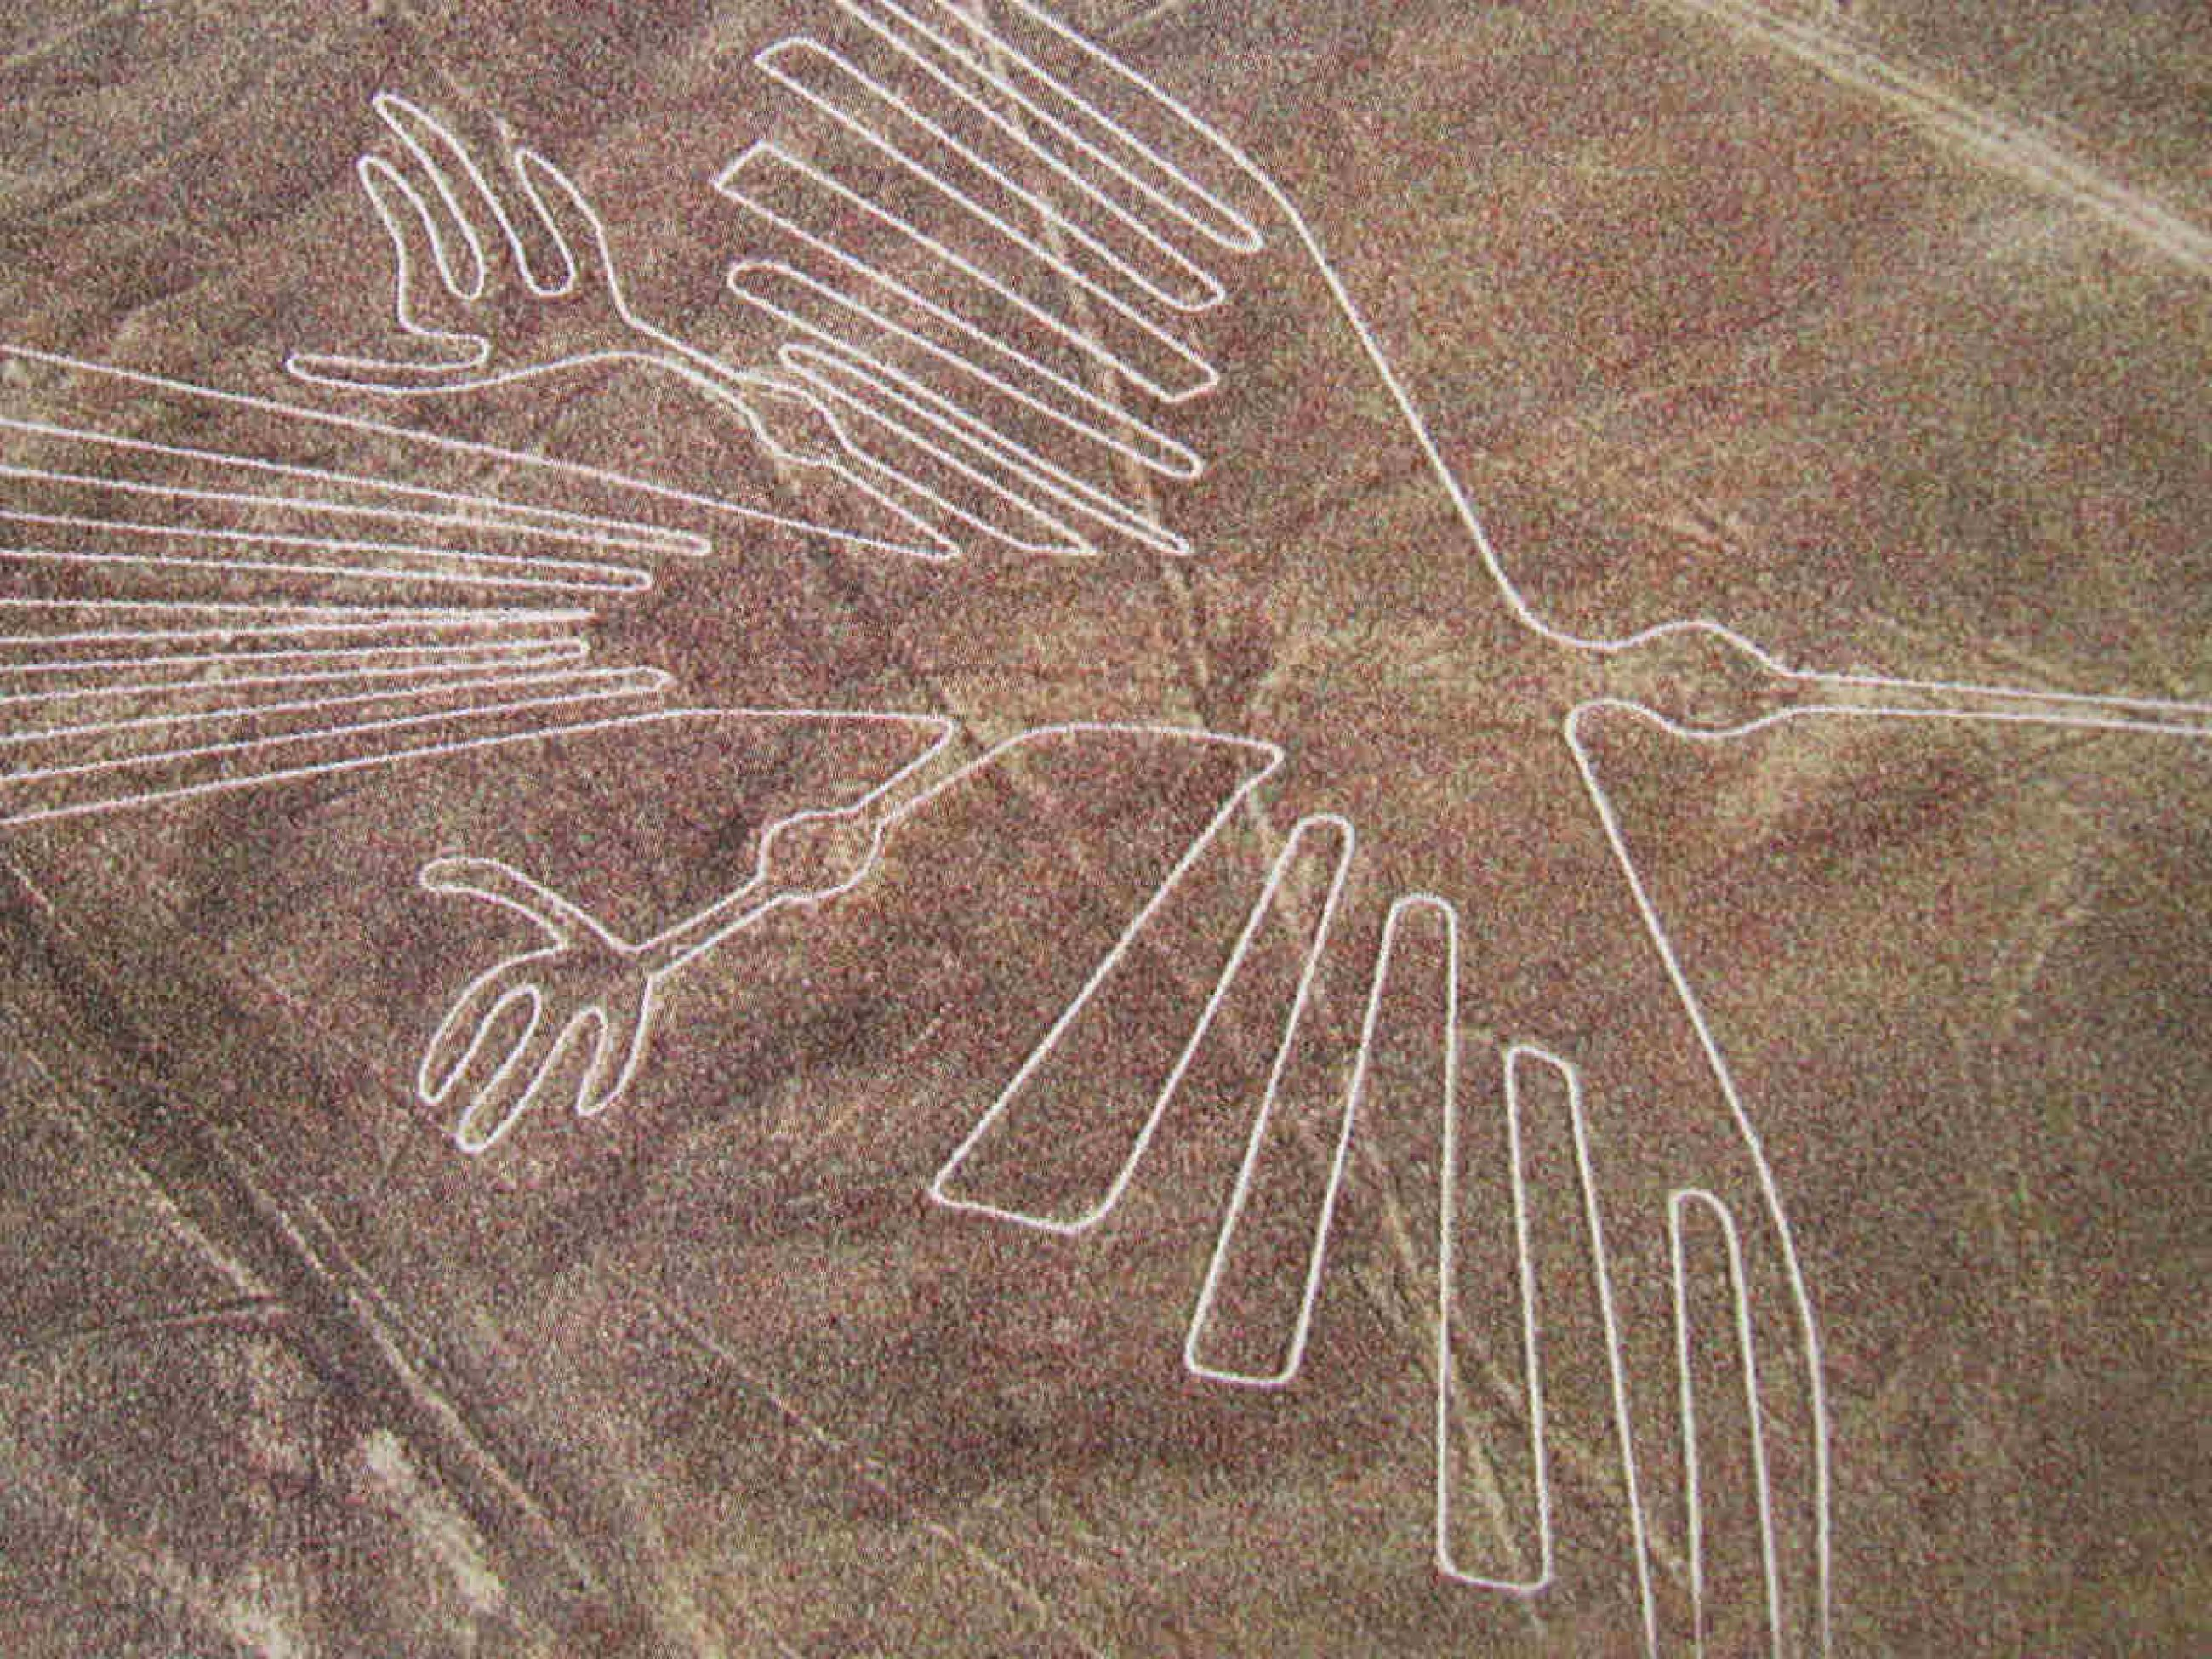 https://bubo.sk/uploads/galleries/7314/peru-nazca.jpg